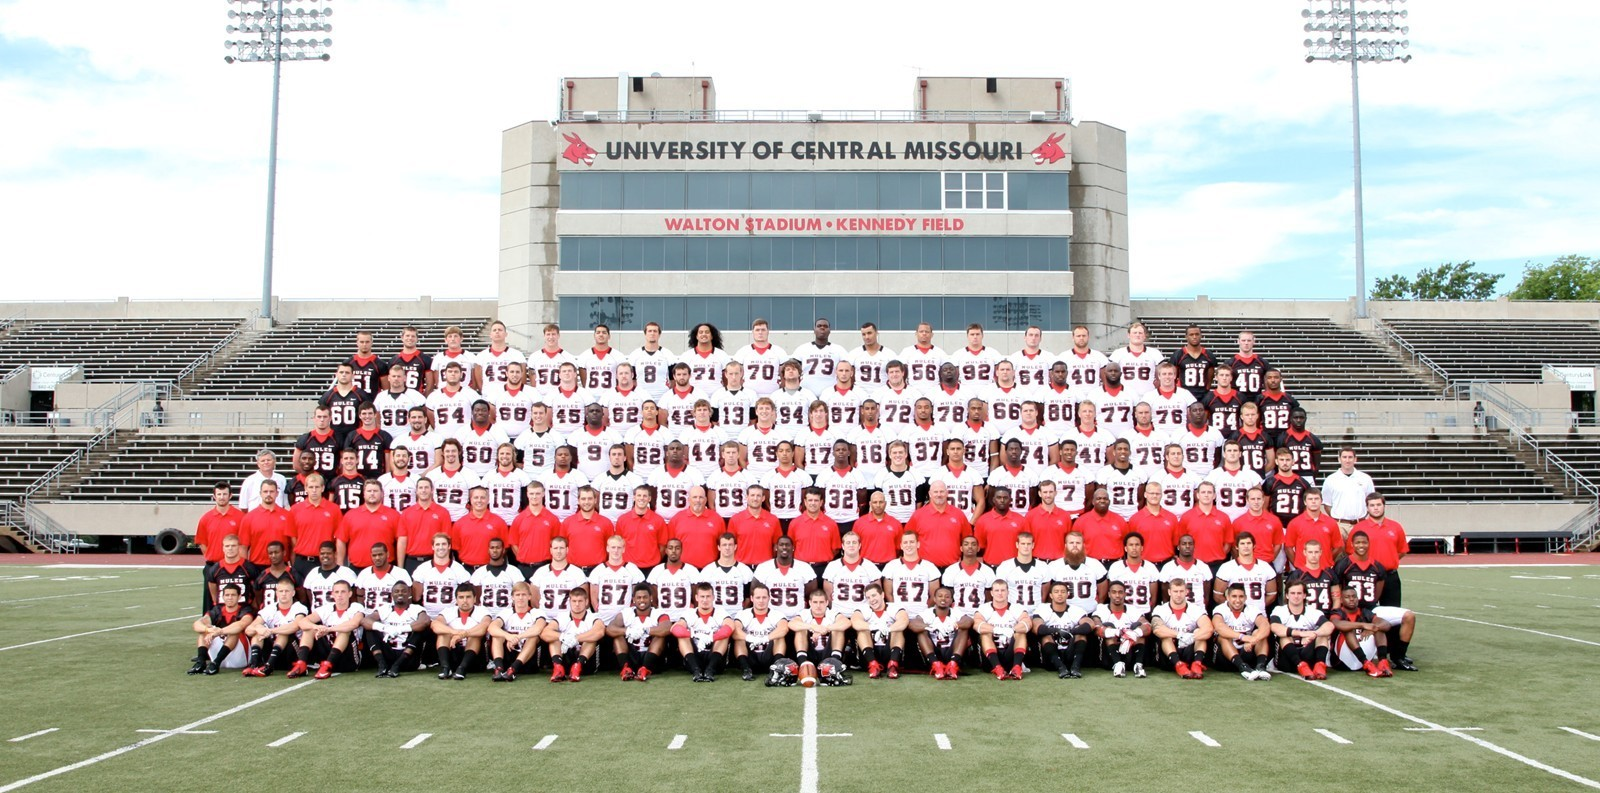 2013 0 Roster University Of Central Missouri Athletics